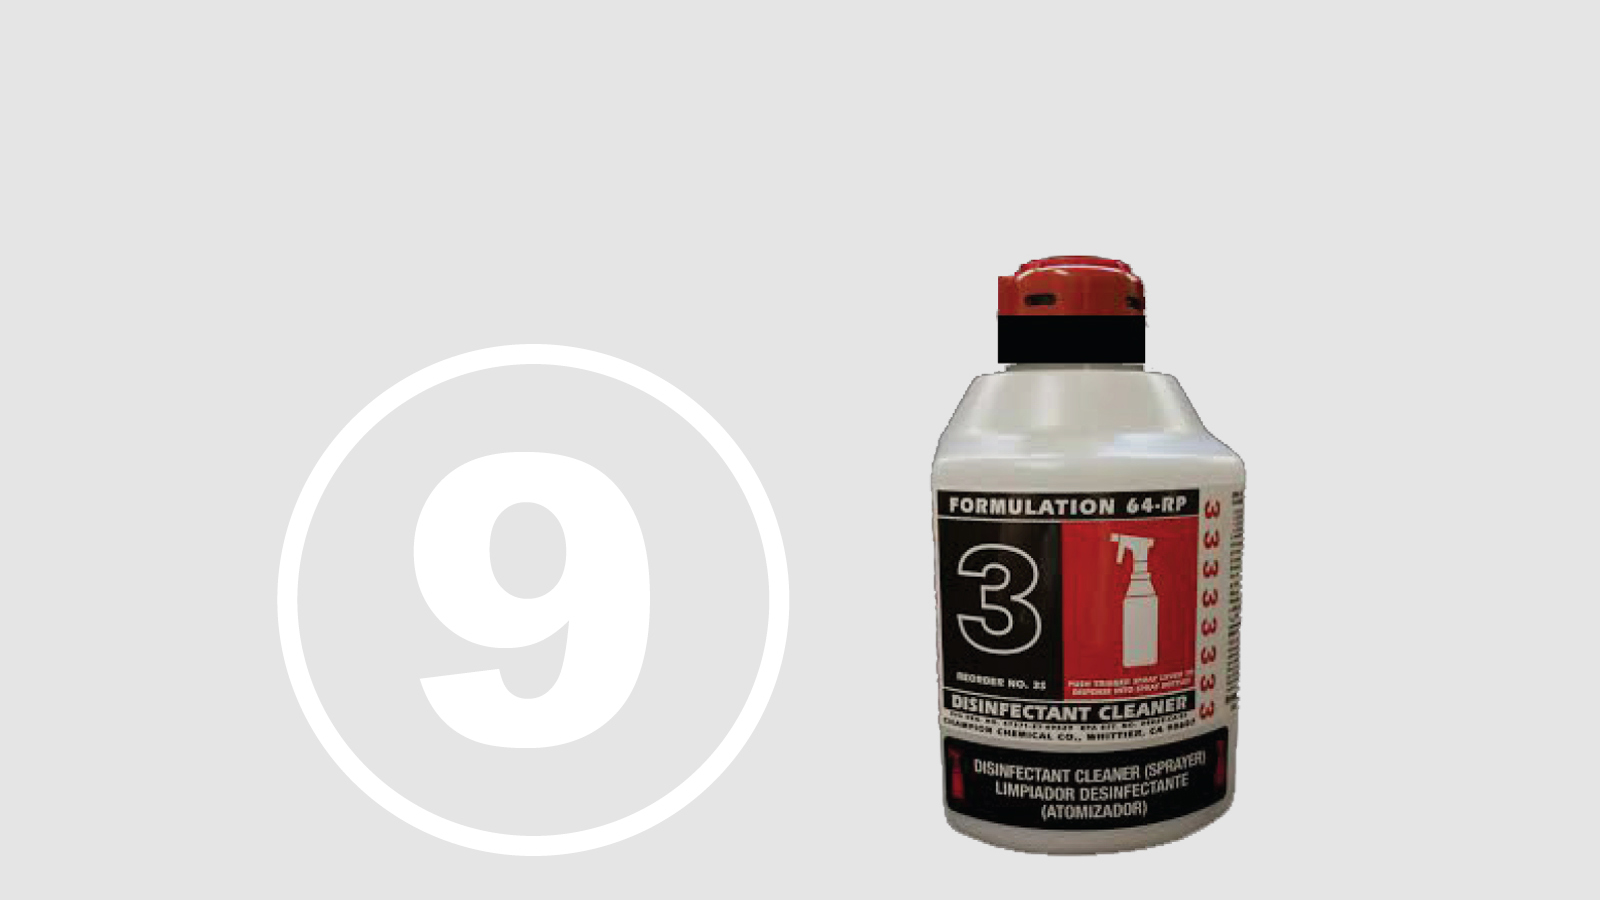 """<h5>Top Ten Most Hazardous Products</h5><h4>Formulation 64-RP</h4><p>An industrial cleaner/disinfectant used by custodians, firefighters and others.<br />We found <span class=""""highlight"""">10 chemicals</span> chemicals linked to chronic health effects with <span class=""""highlight"""">70% hidden in """"fragrance.""""</span></p>"""